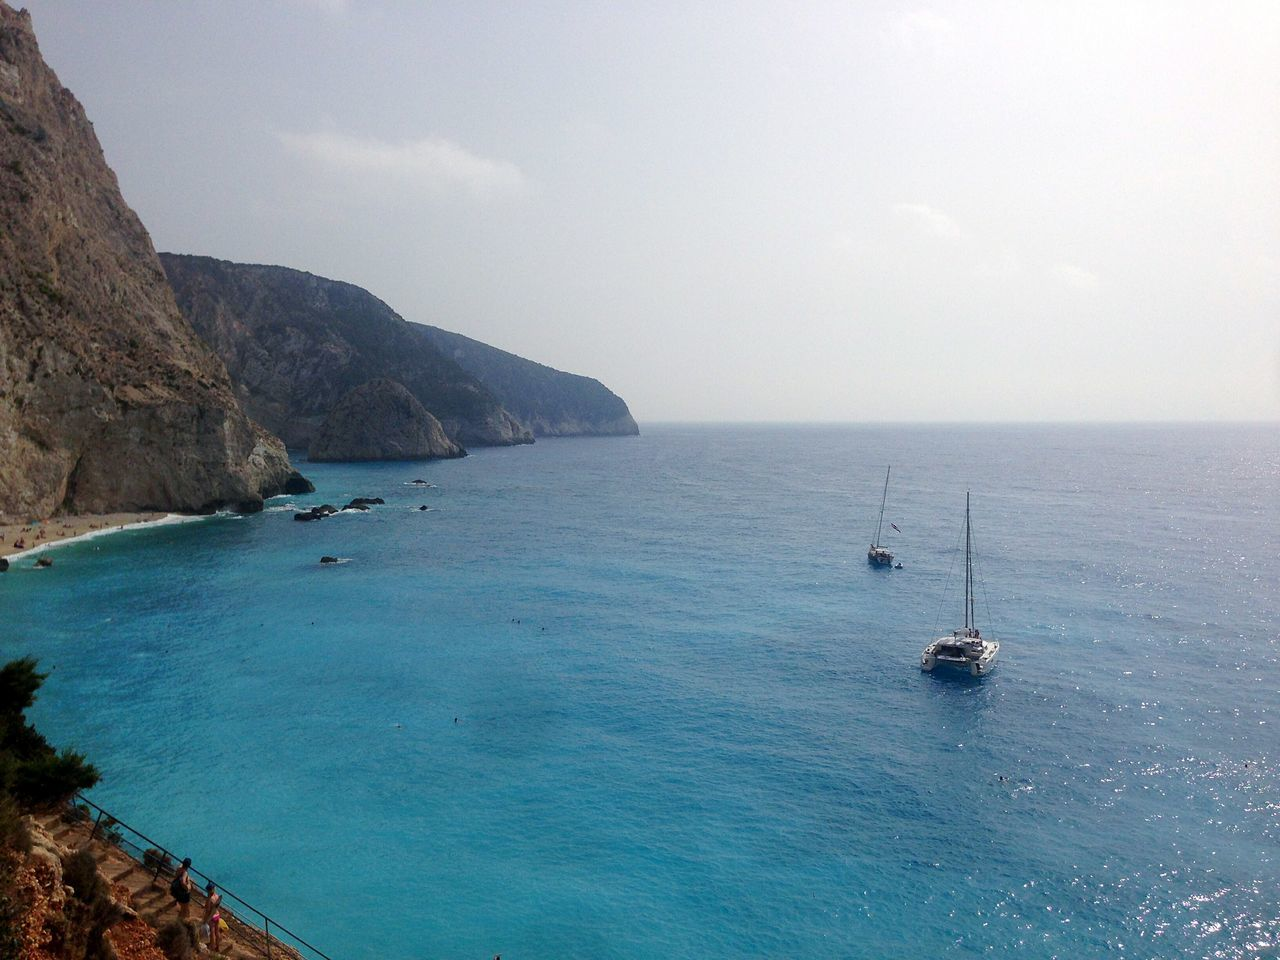 Porto Katsiki Porto Katsiki Beach Lefkada, Greece Sea Nautical Vessel Beach Top 10 Beaches Vacations No People Water Ship Day Travel Destinations Sailing Sailboat Yacht Sky Horizon Over Water Summer Blue Outdoors Tranquility Landscape Nature Scenics